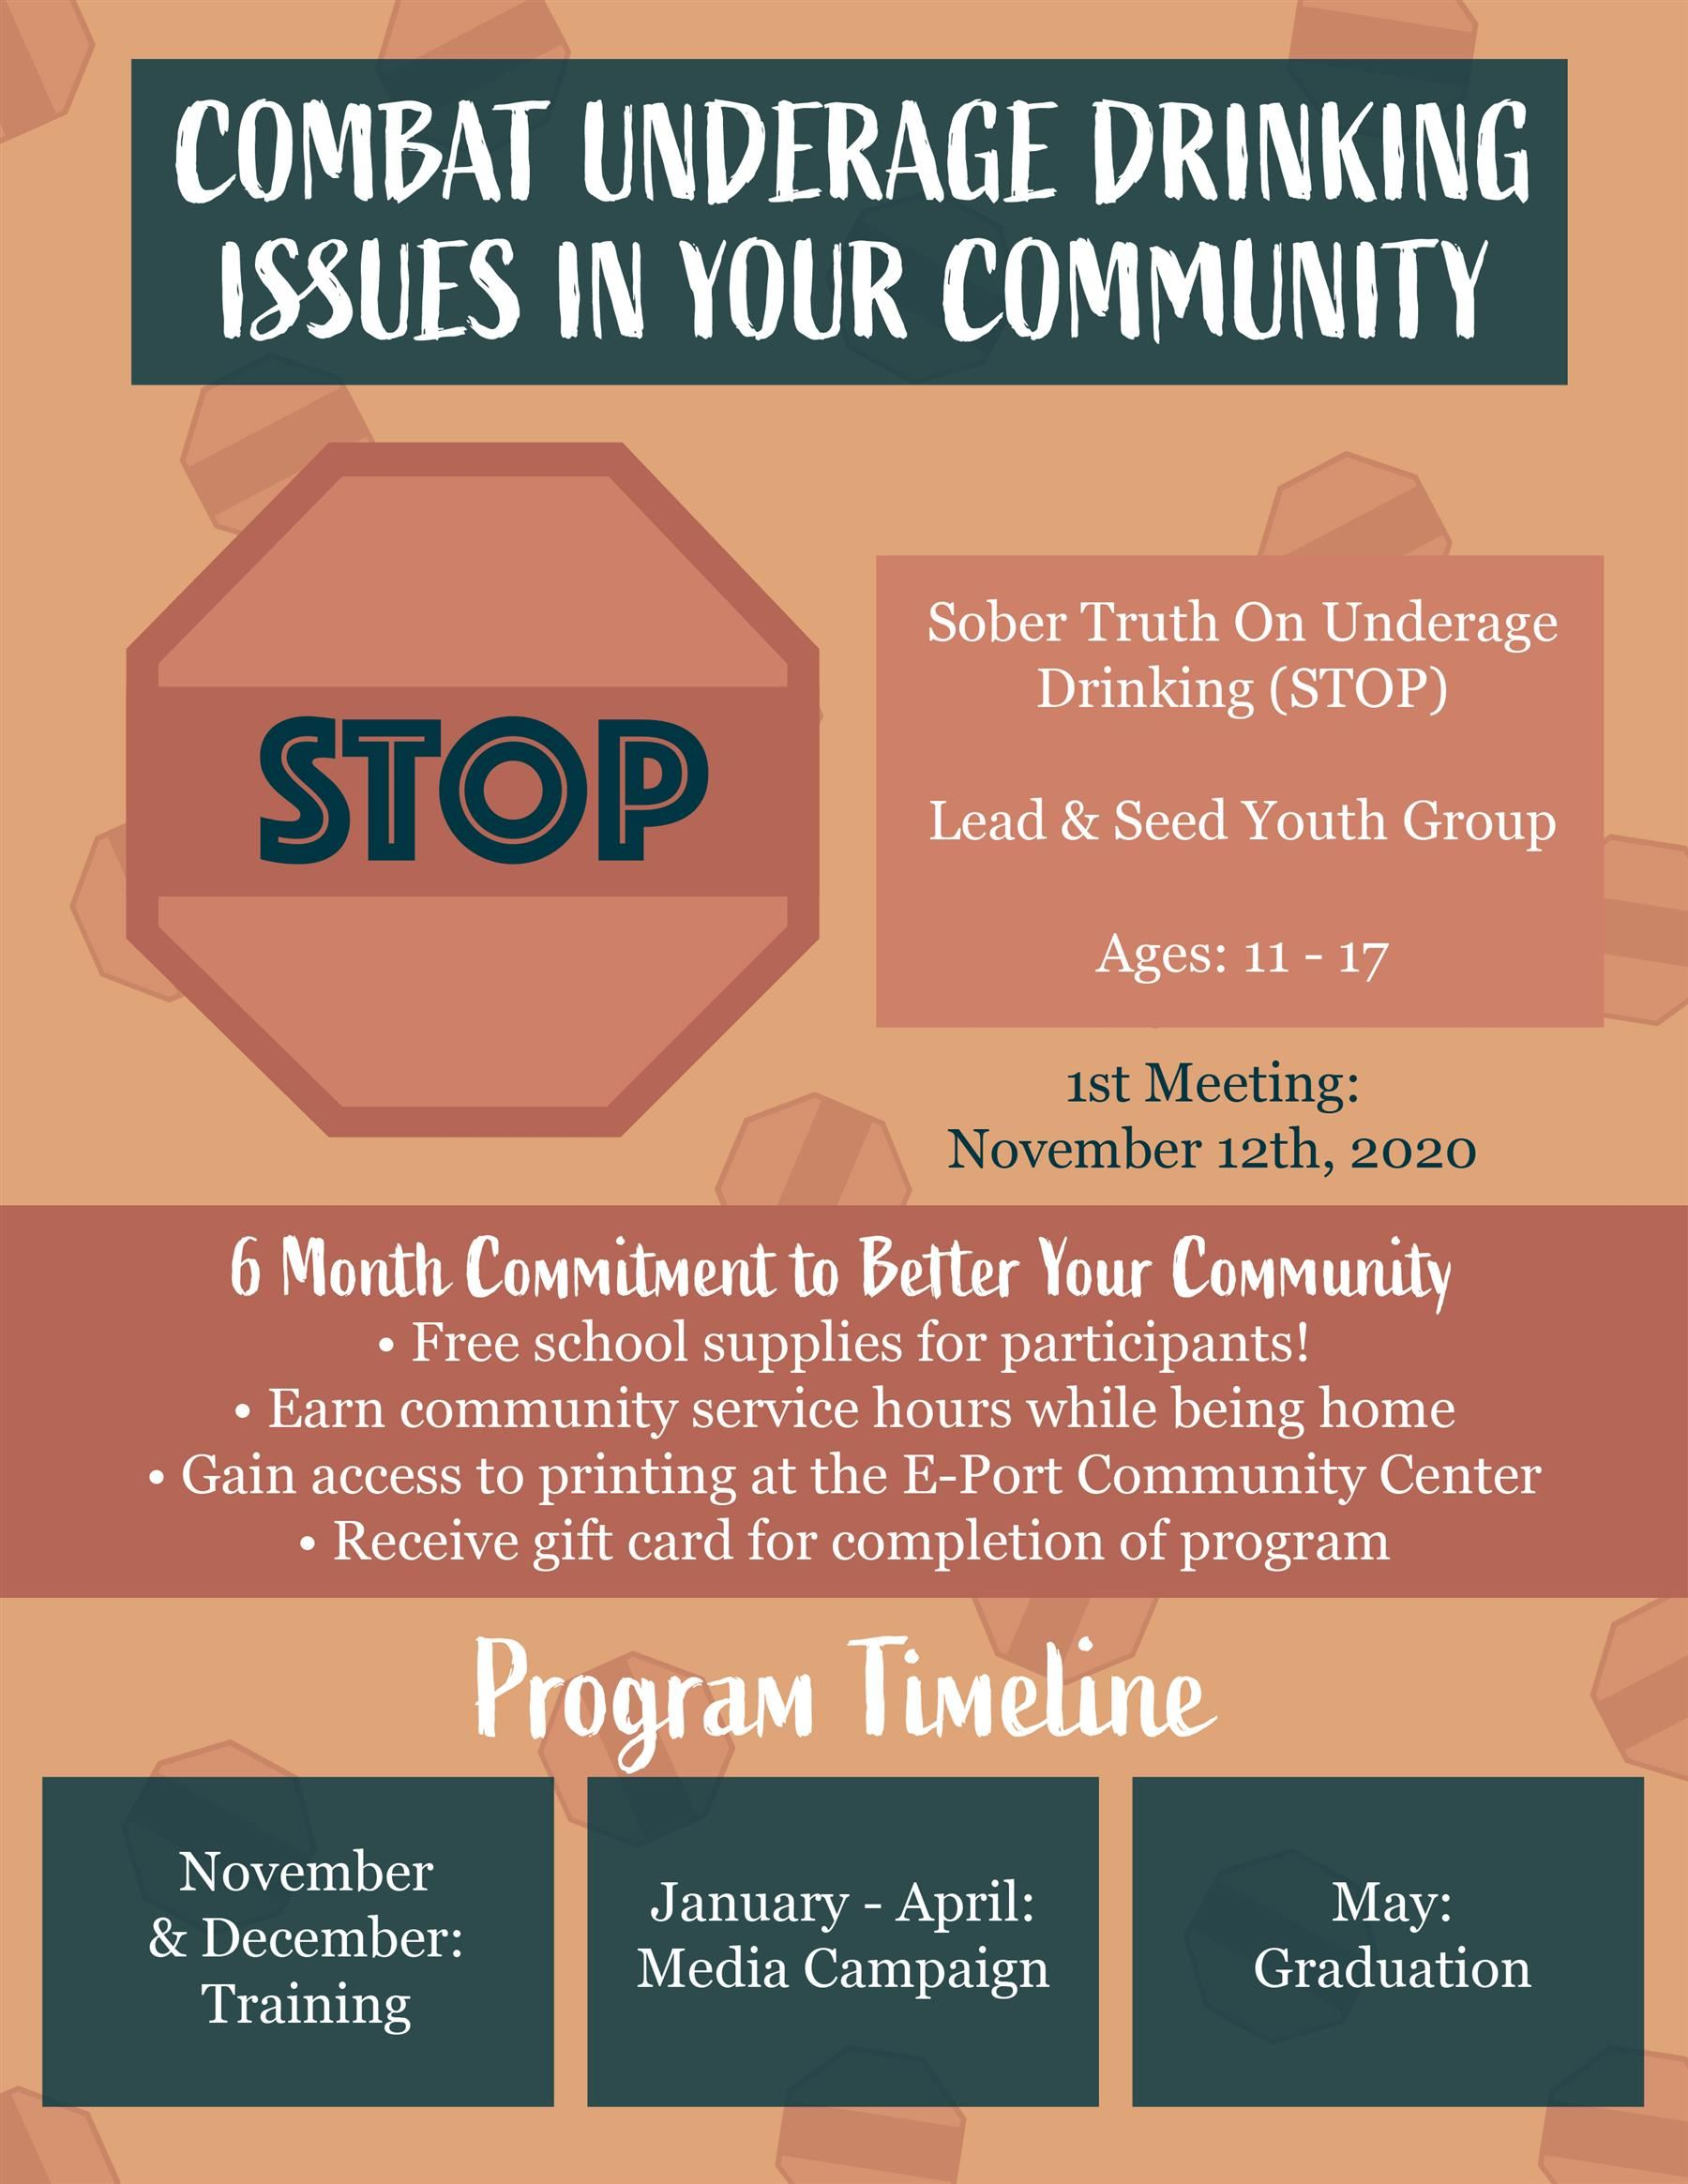 Combat Underage Drinking Issues In Your Community